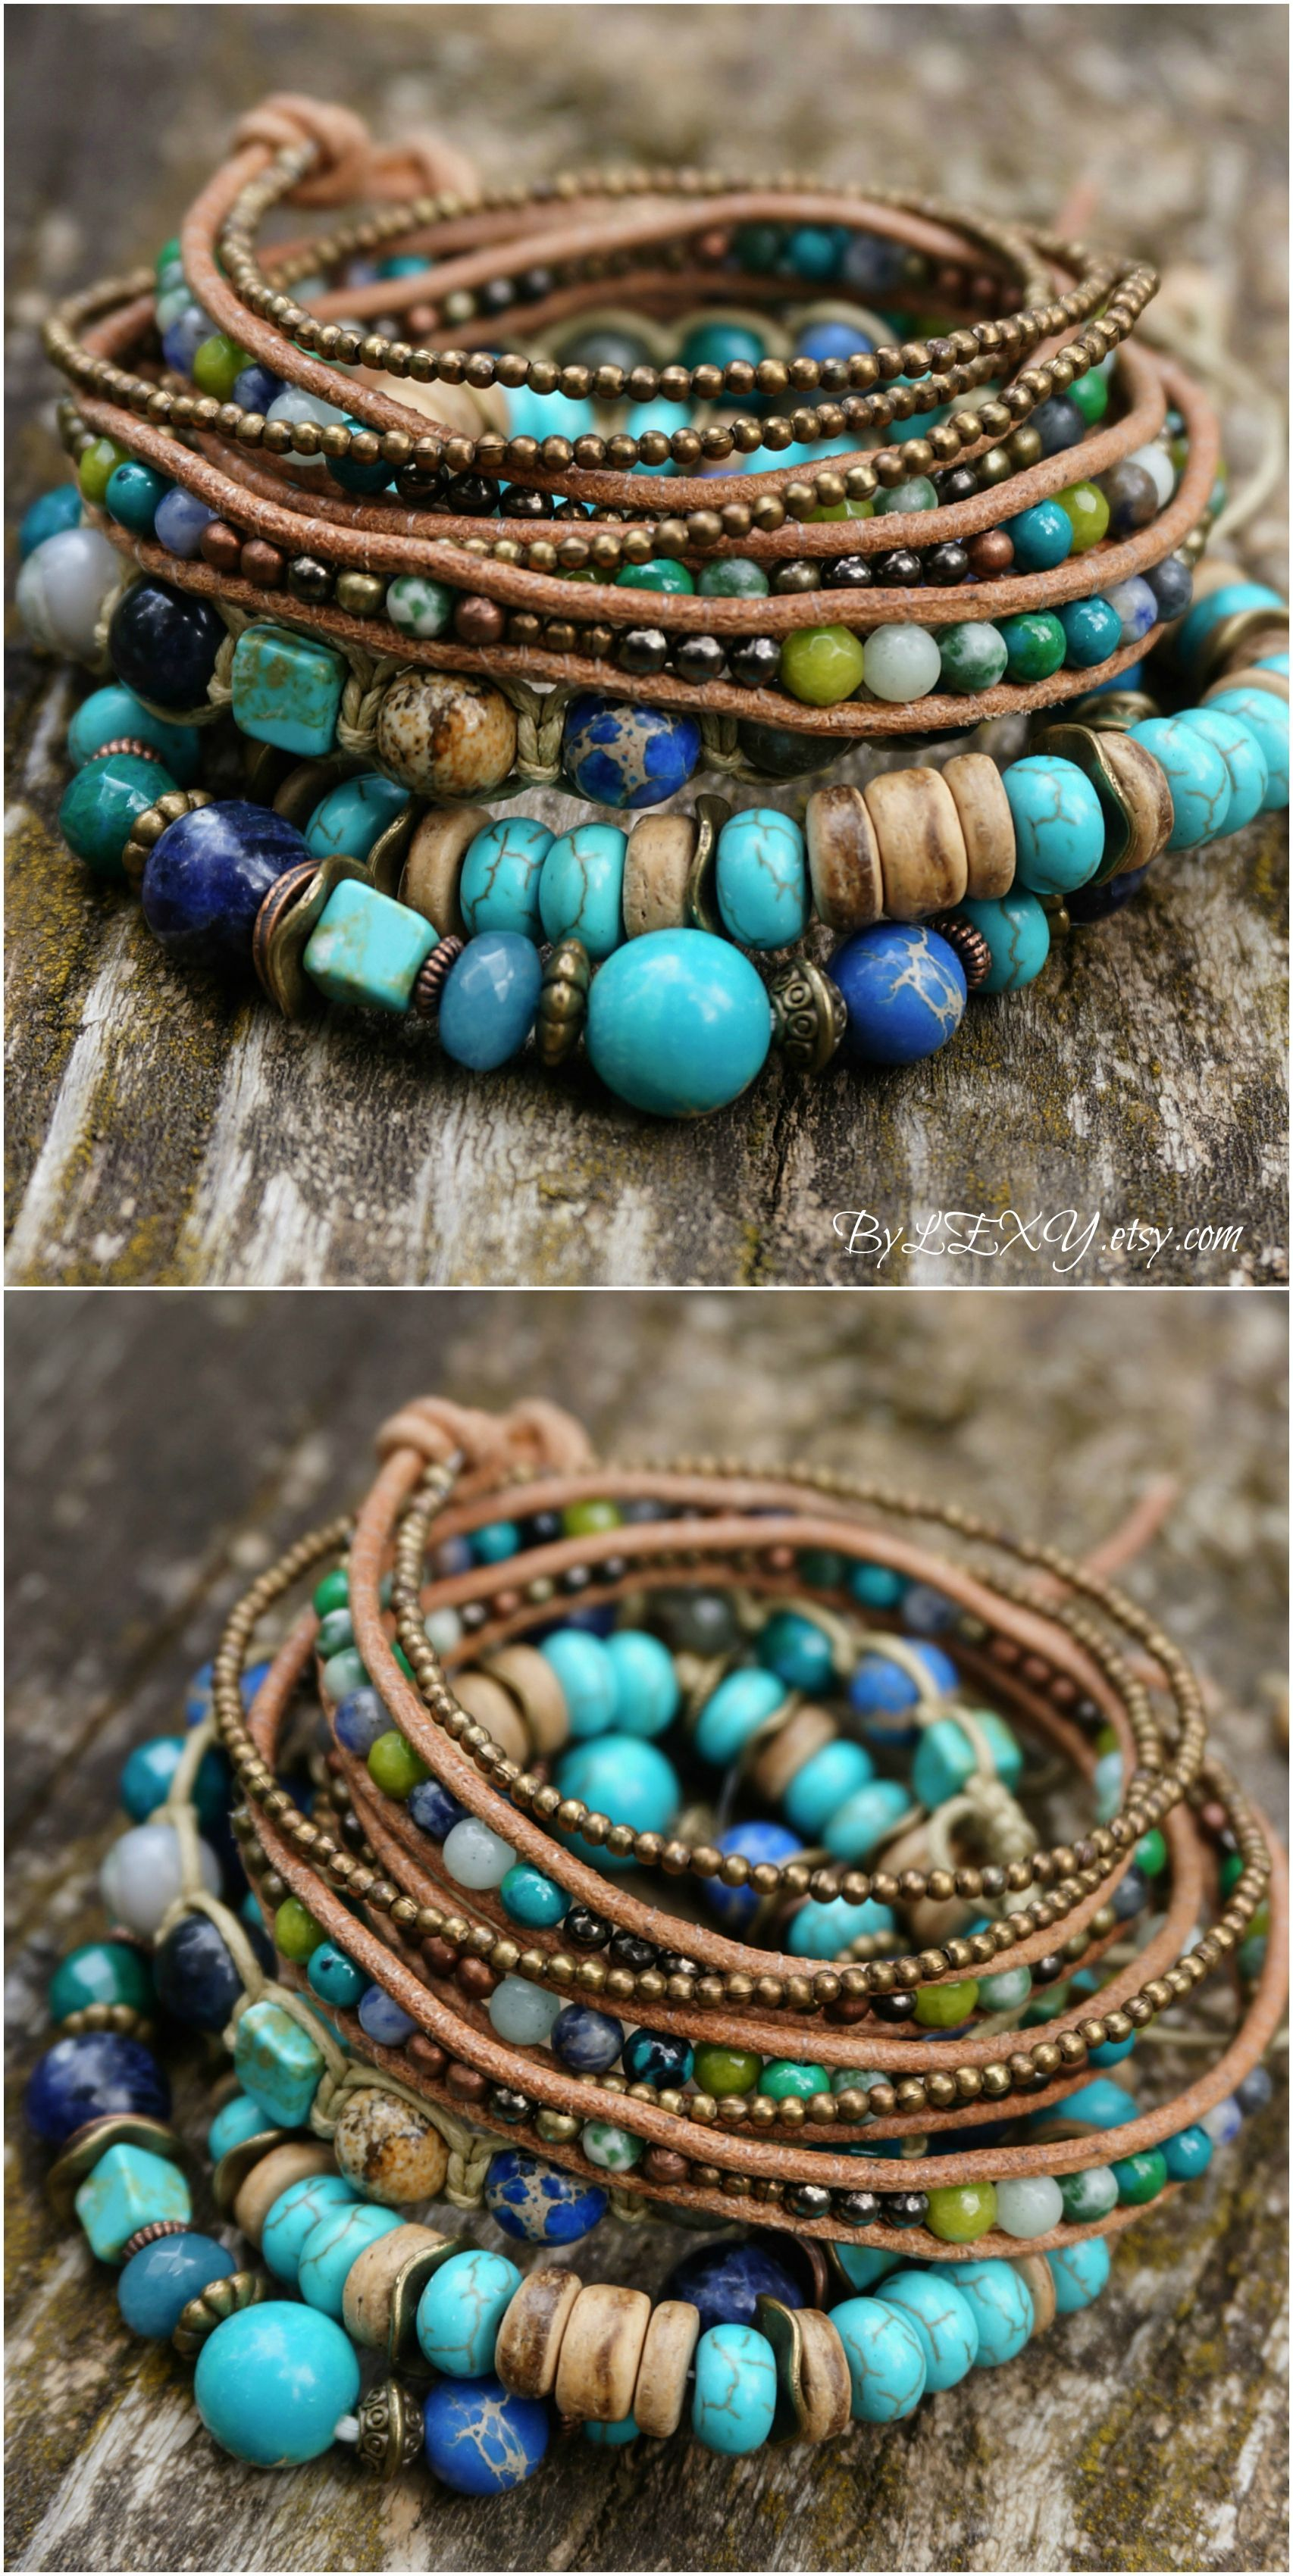 DIY Boho-Chic Leather Bracelet With Beads And Chain DIY Boho-Chic Leather Bracelet With Beads And Chain new pics